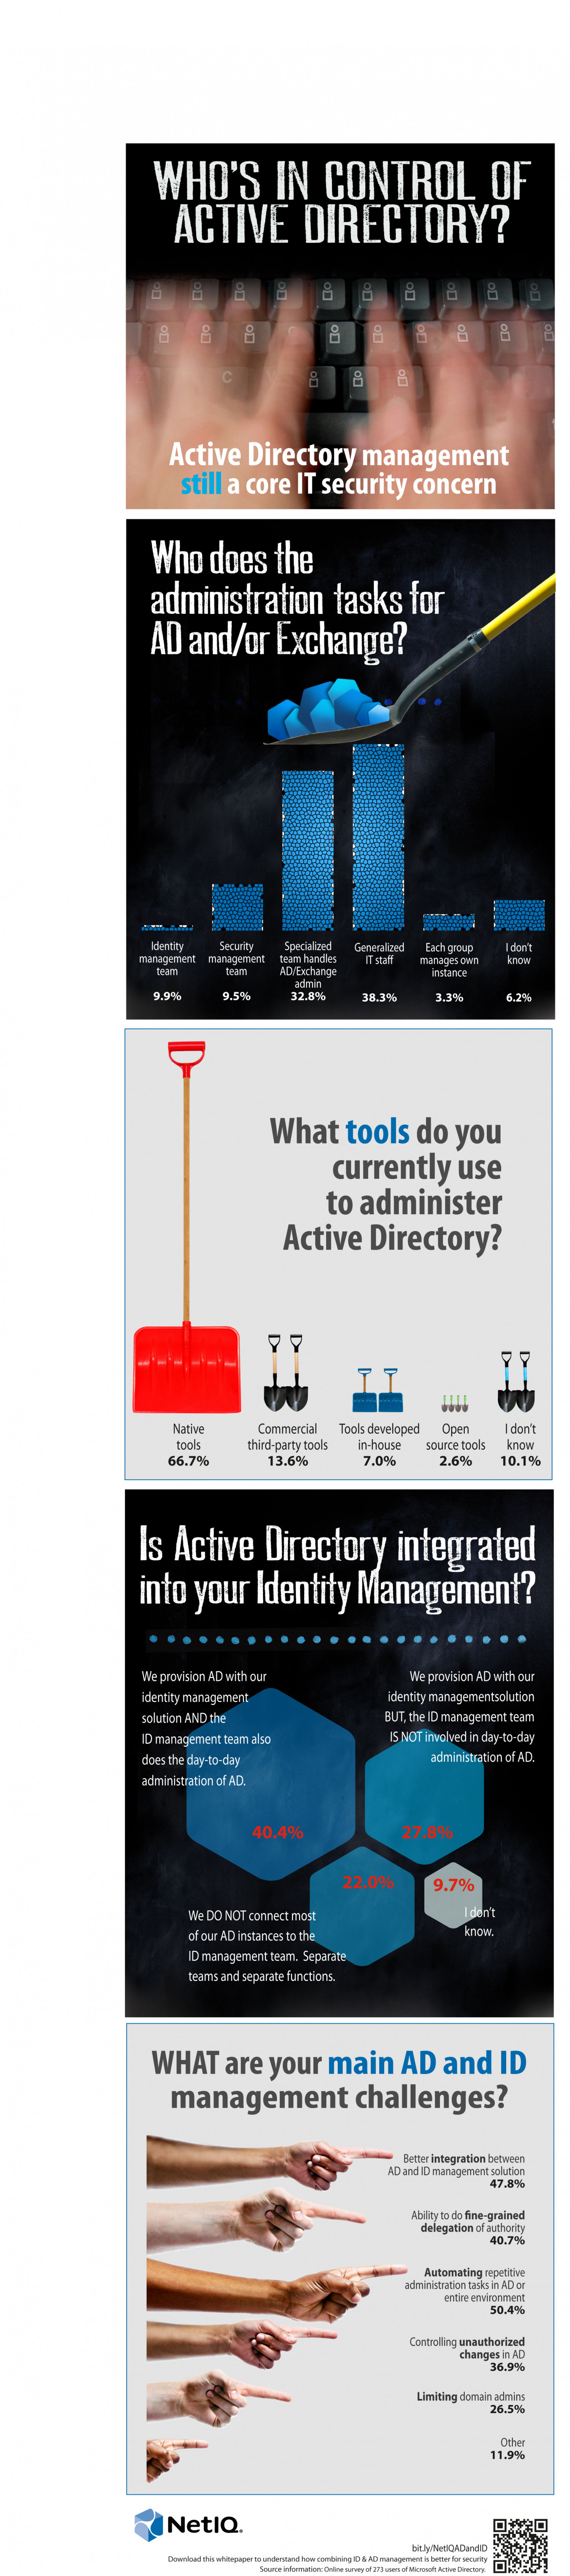 Who's in Control of Active Directory? Infographic